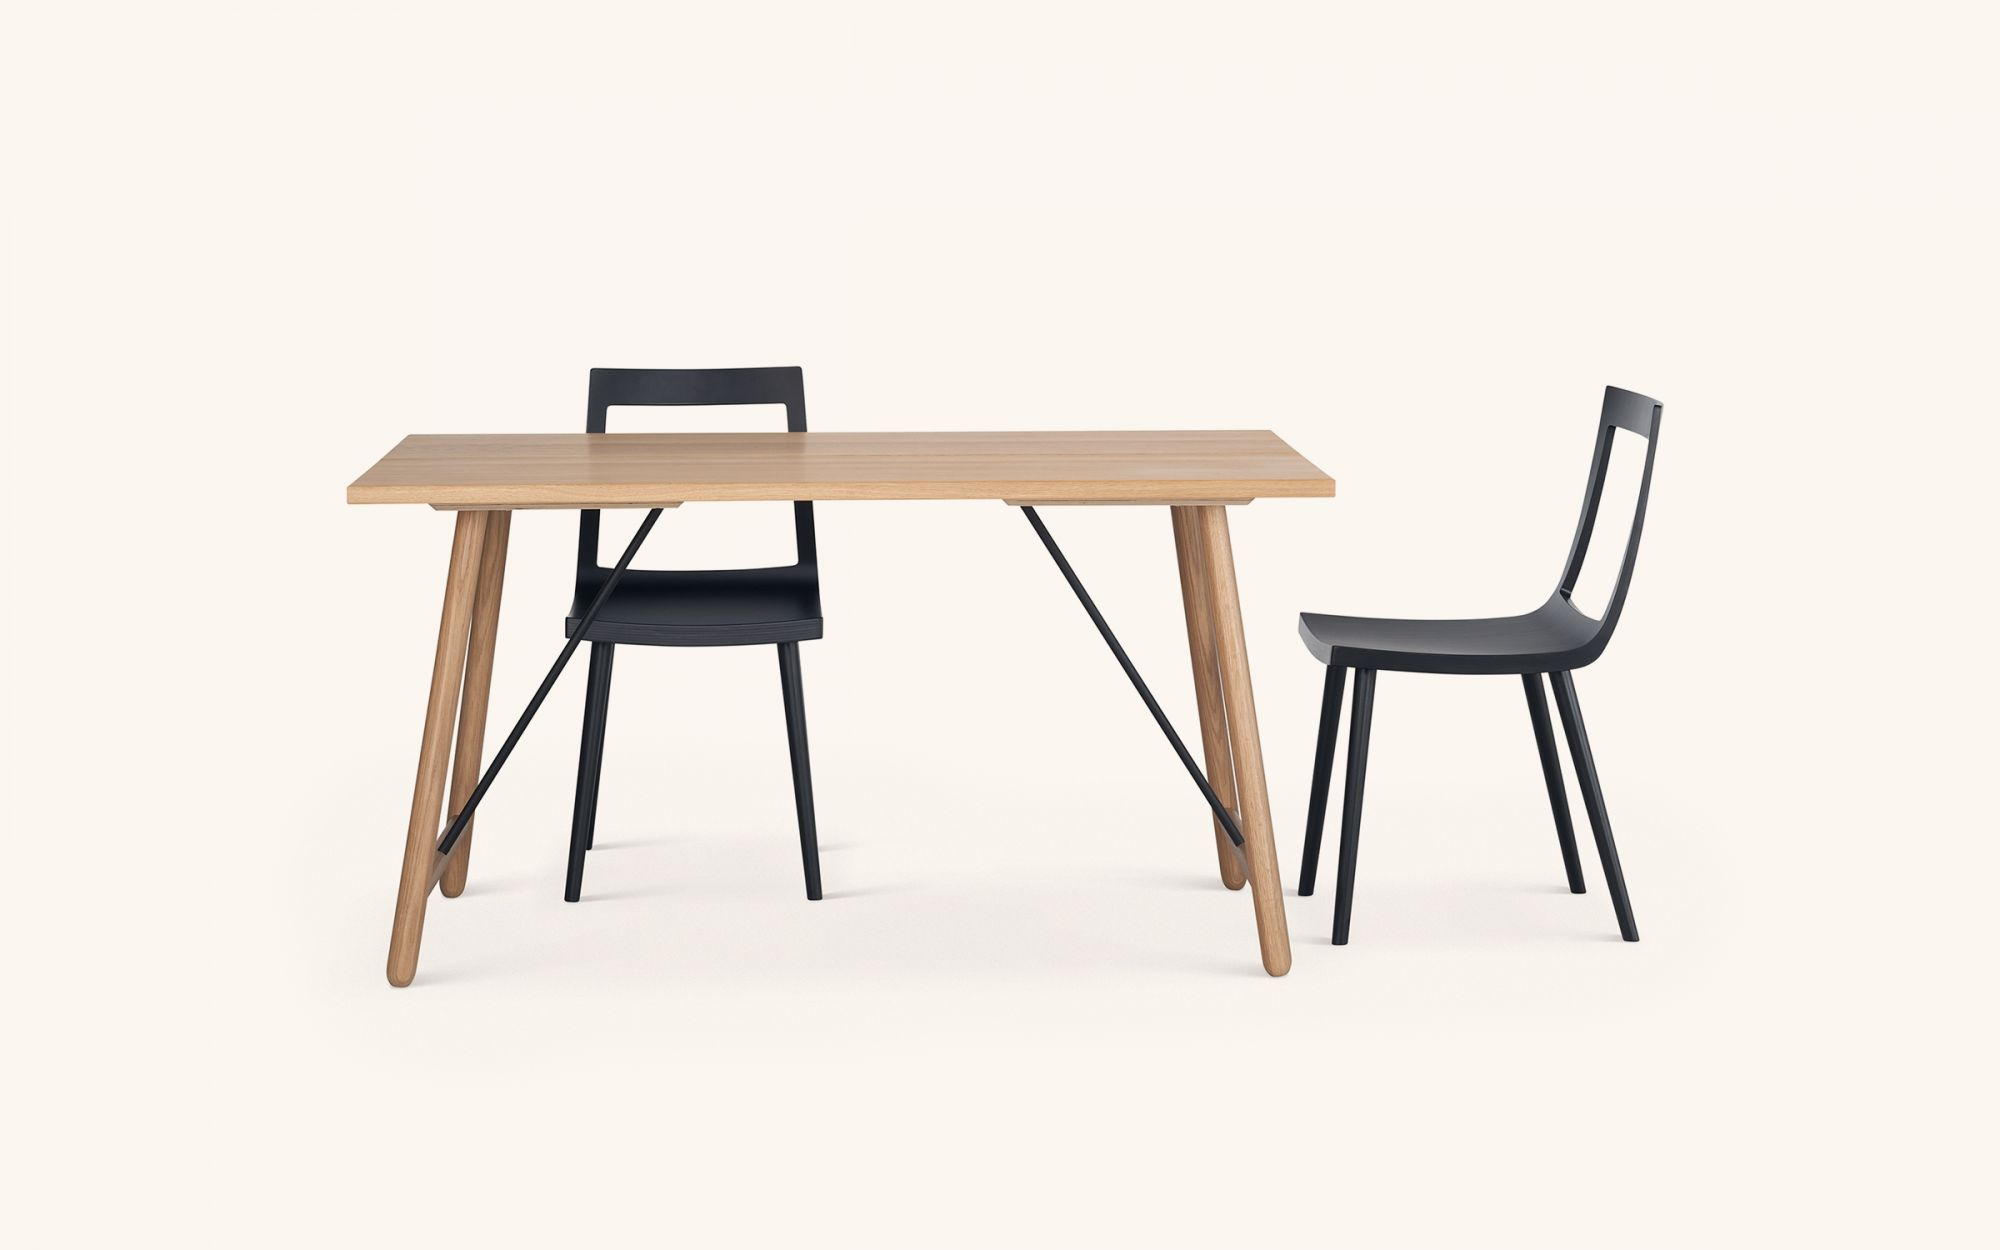 FrontWood-table140-mood-TapioAnttilaCollection